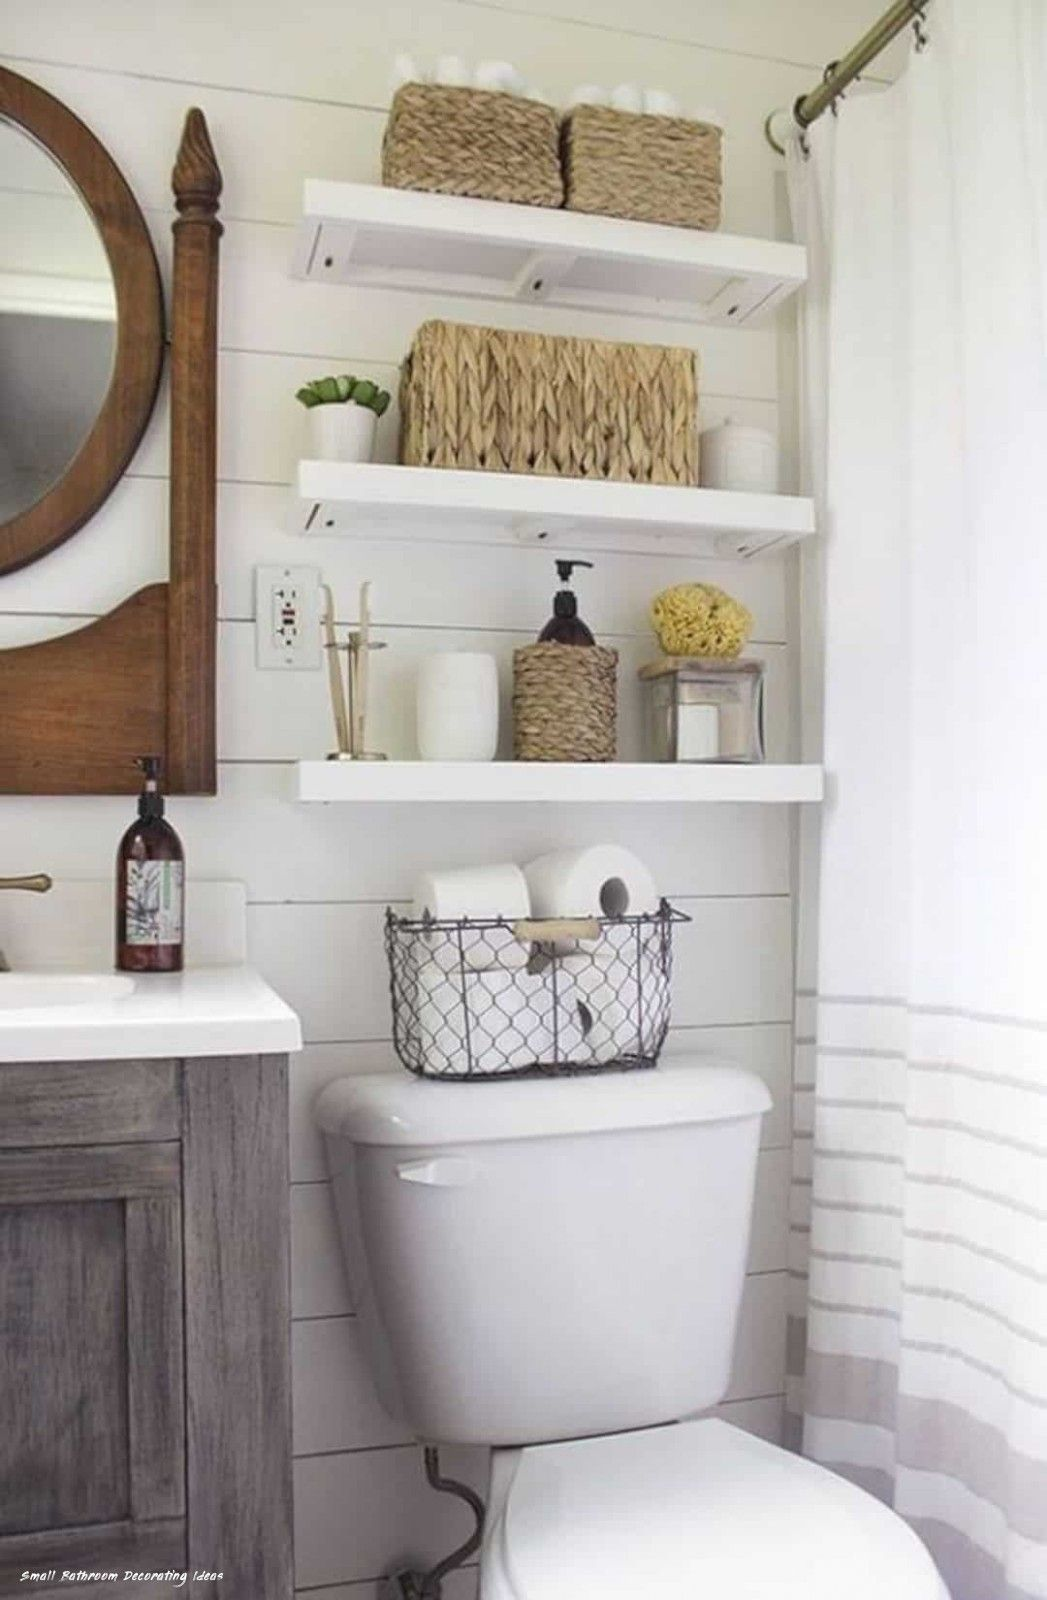 23 Images Of Small Bathroom Decorating Ideas Small Bathroom Decor Small Shower Remodel Shower Remodel Decorate small bathroom cheap